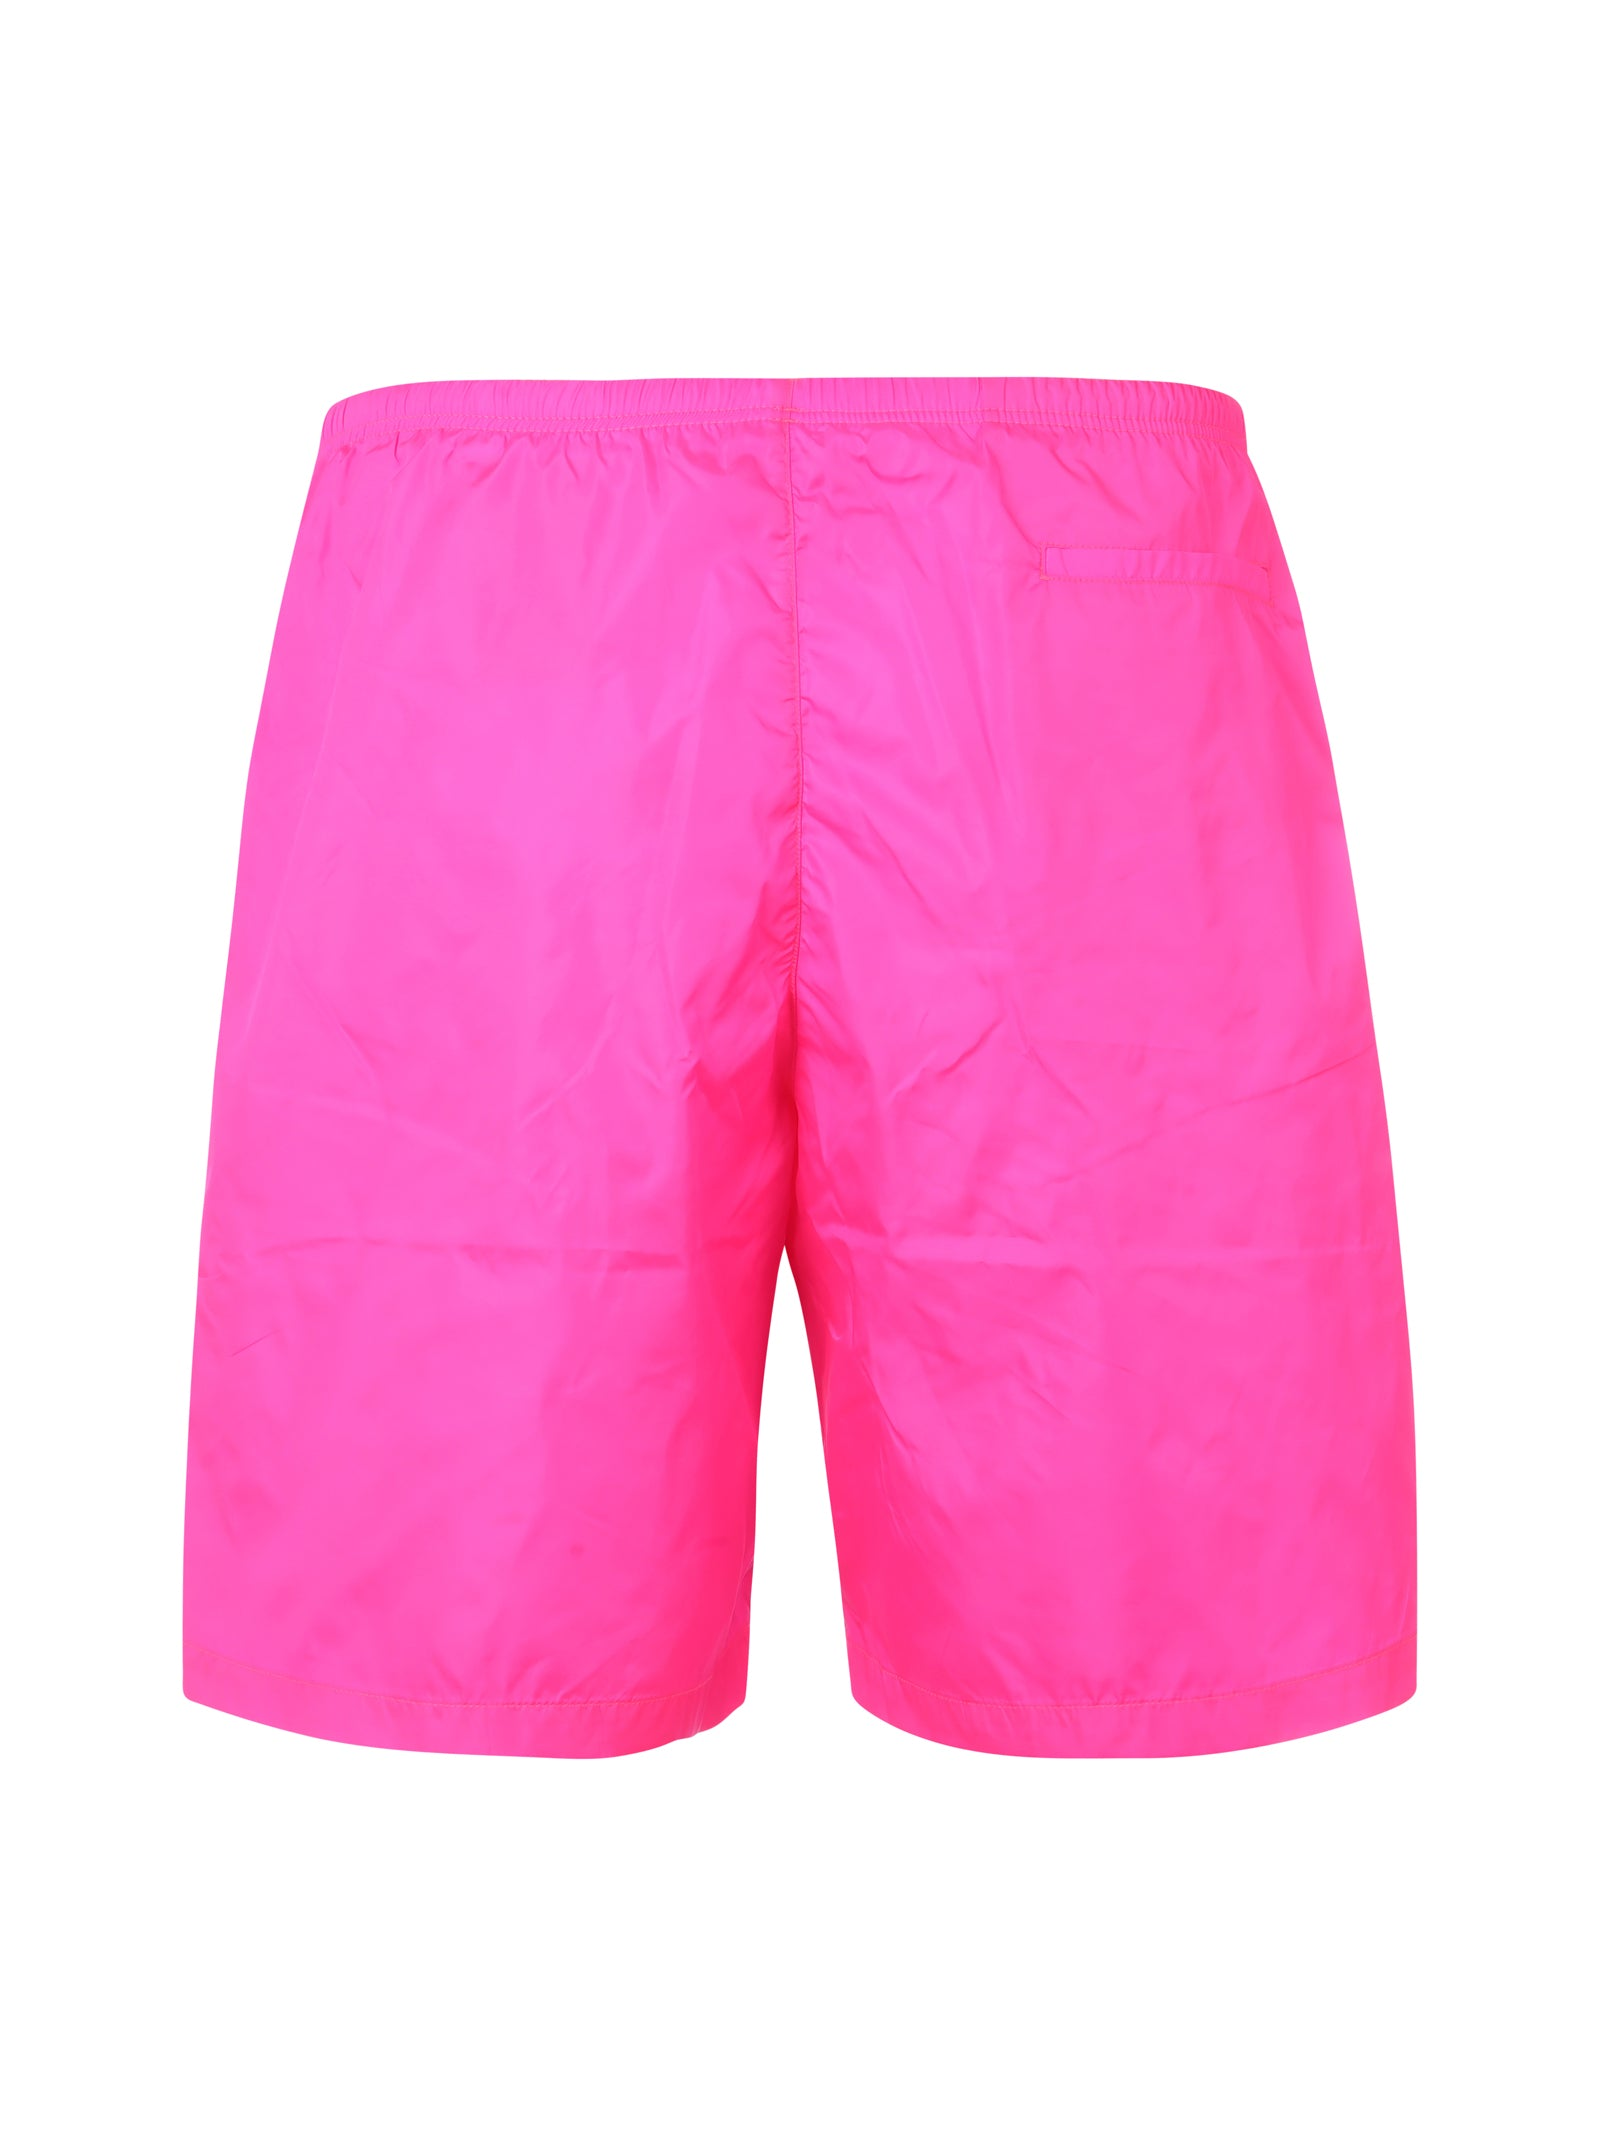 CURVED LOGO SWIMMING SHORTS